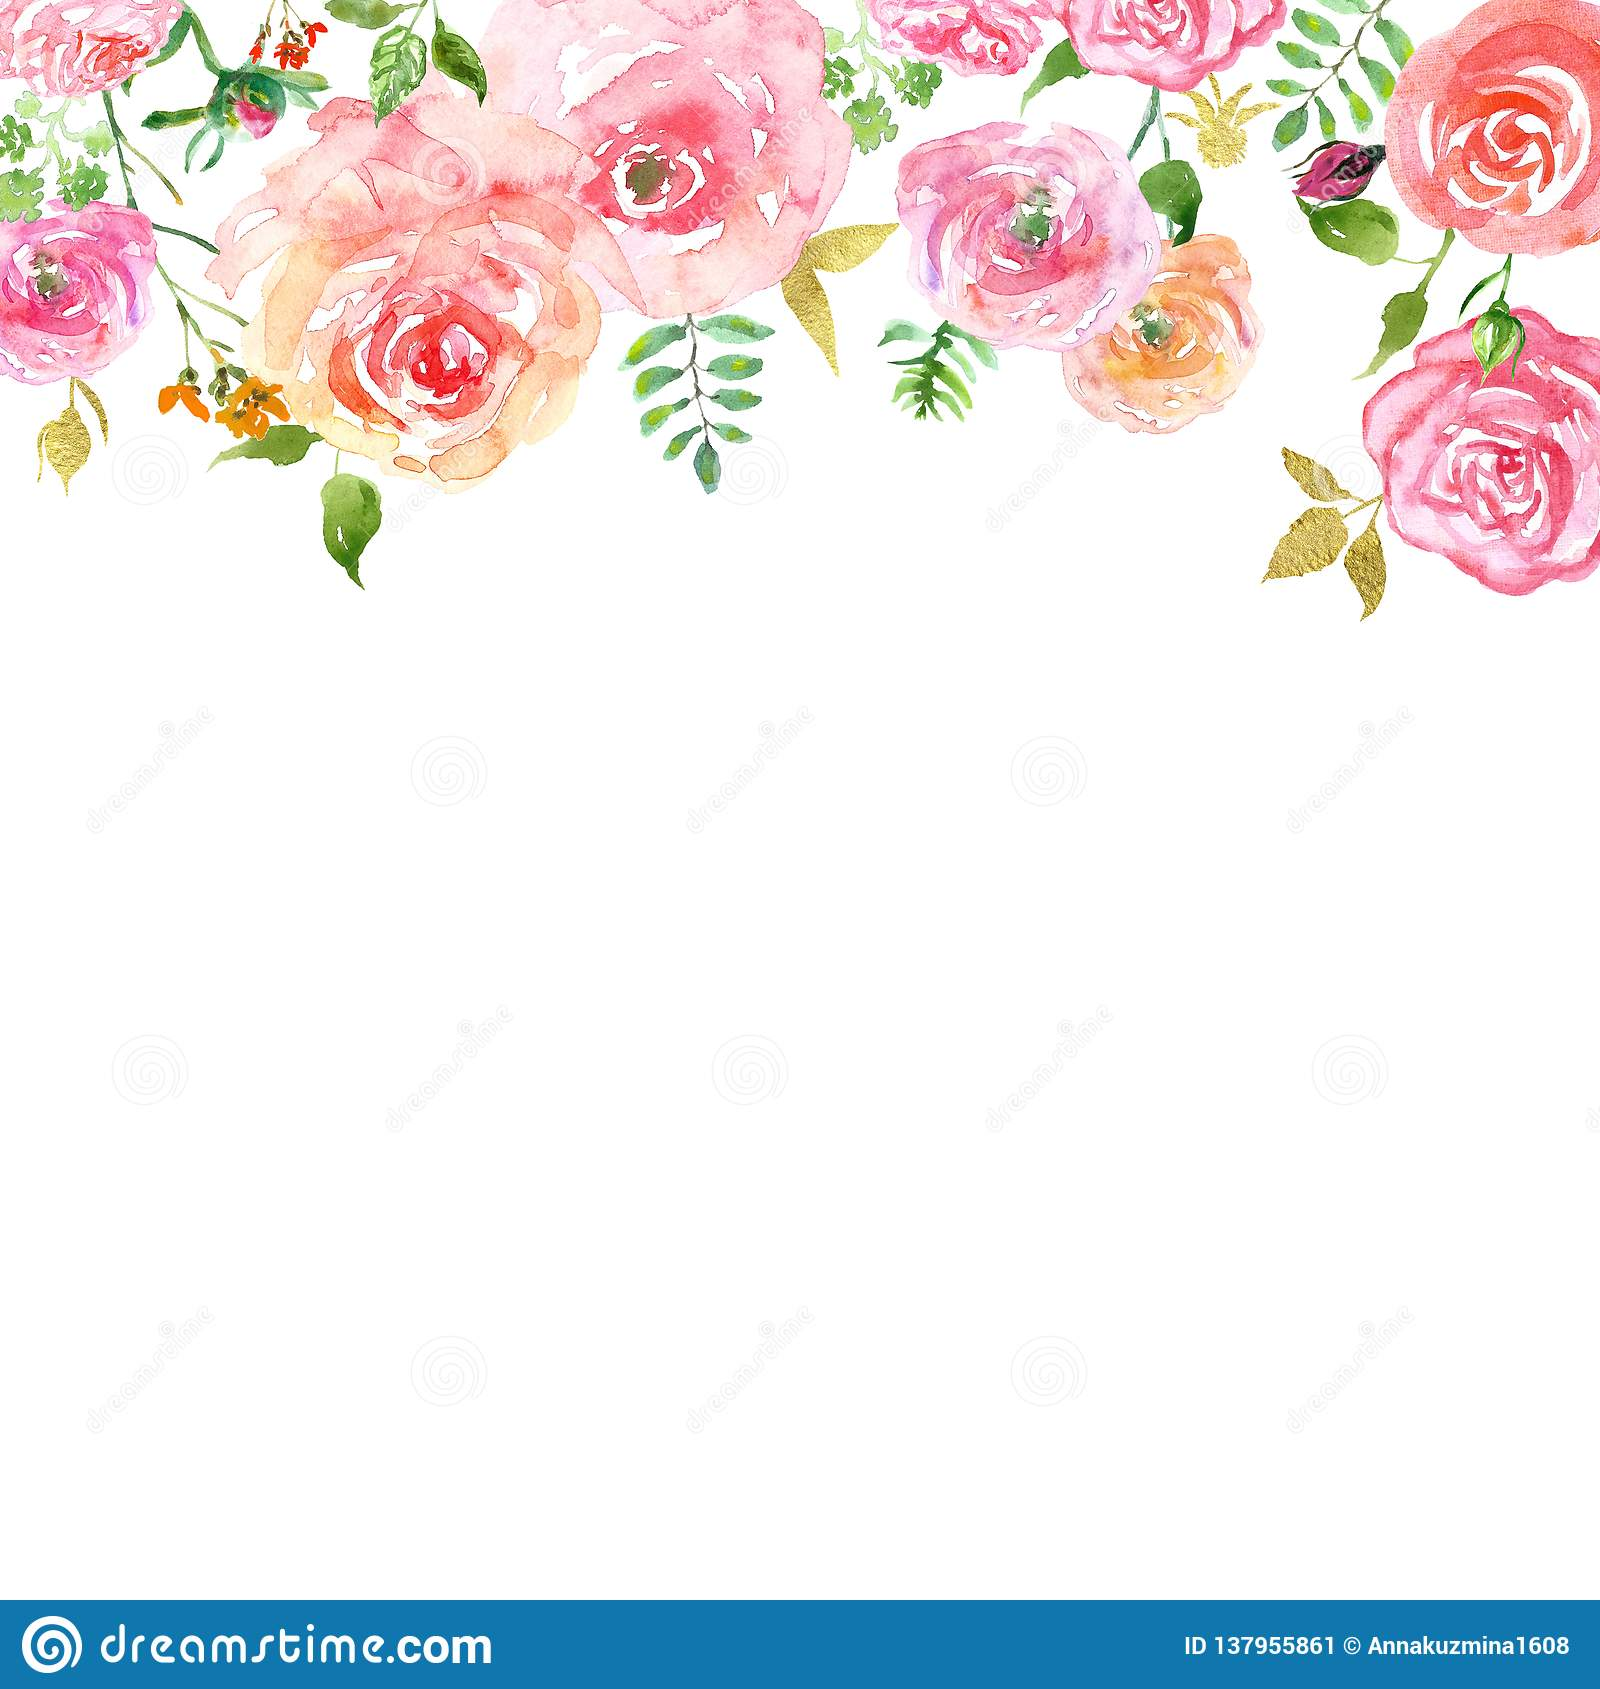 Watercolor Spring Floral Header With Hand Painted Blush Pink Roses